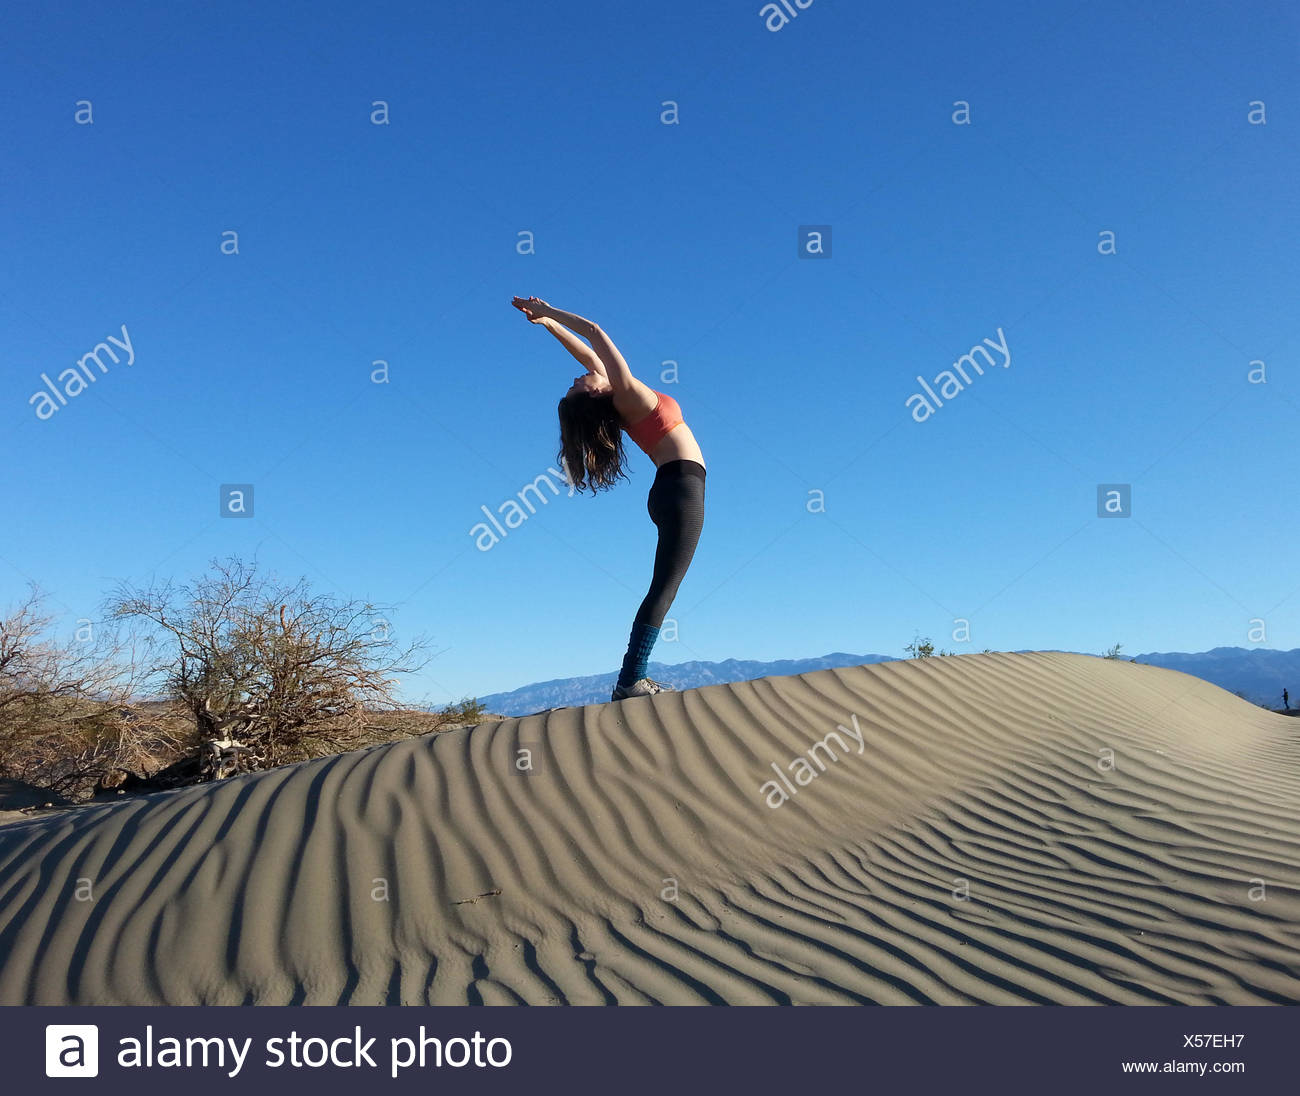 Women doing back bend on sand dune, Death Valley National Park, California, America, USA - Stock Image